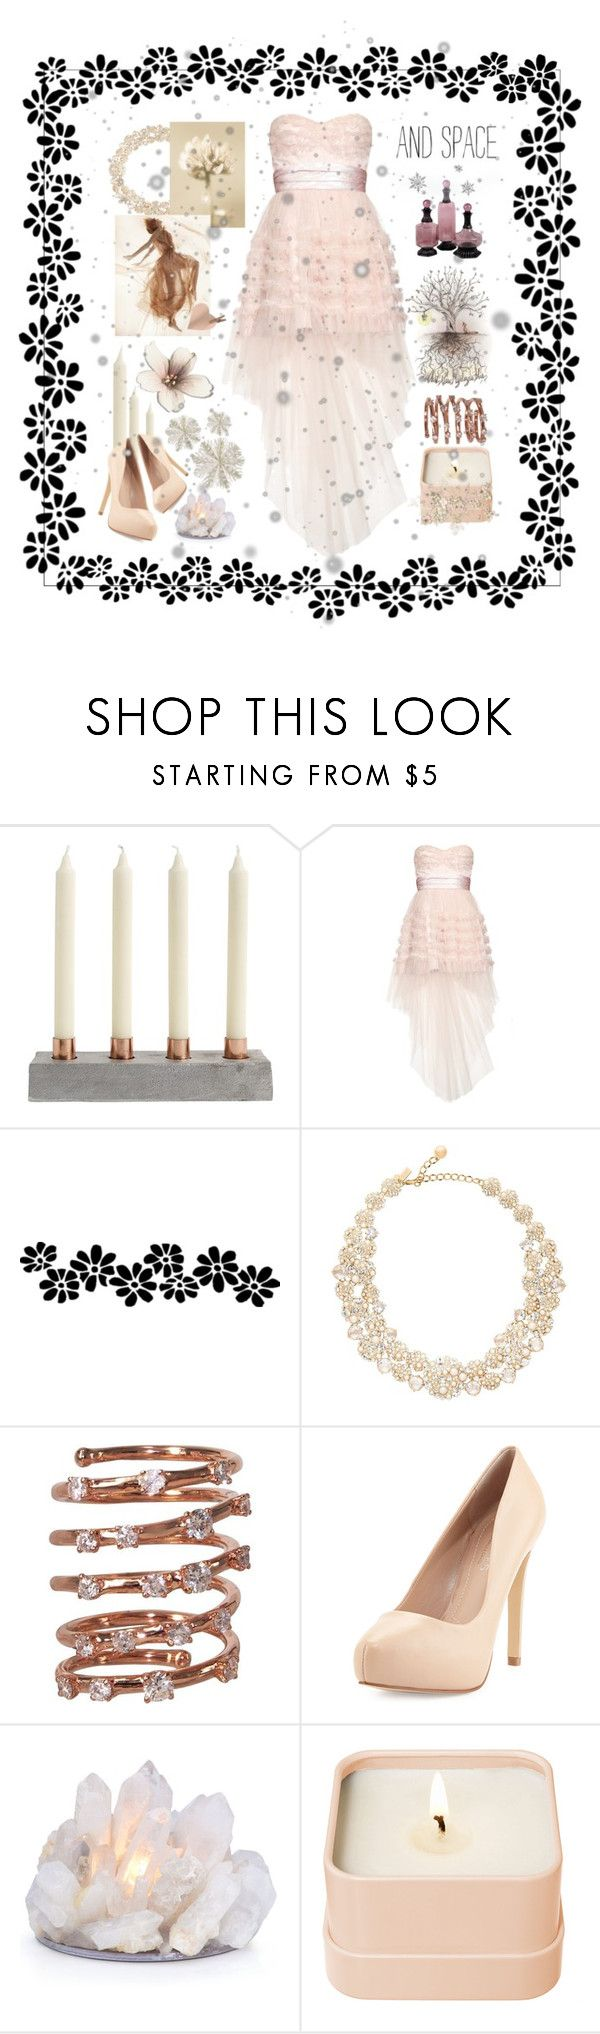 """""""and.."""" by filidurin ❤ liked on Polyvore featuring Yves Saint Laurent, Kate Spade, Plukka, Charles by Charles David, Henri Bendel and Dot & Bo"""